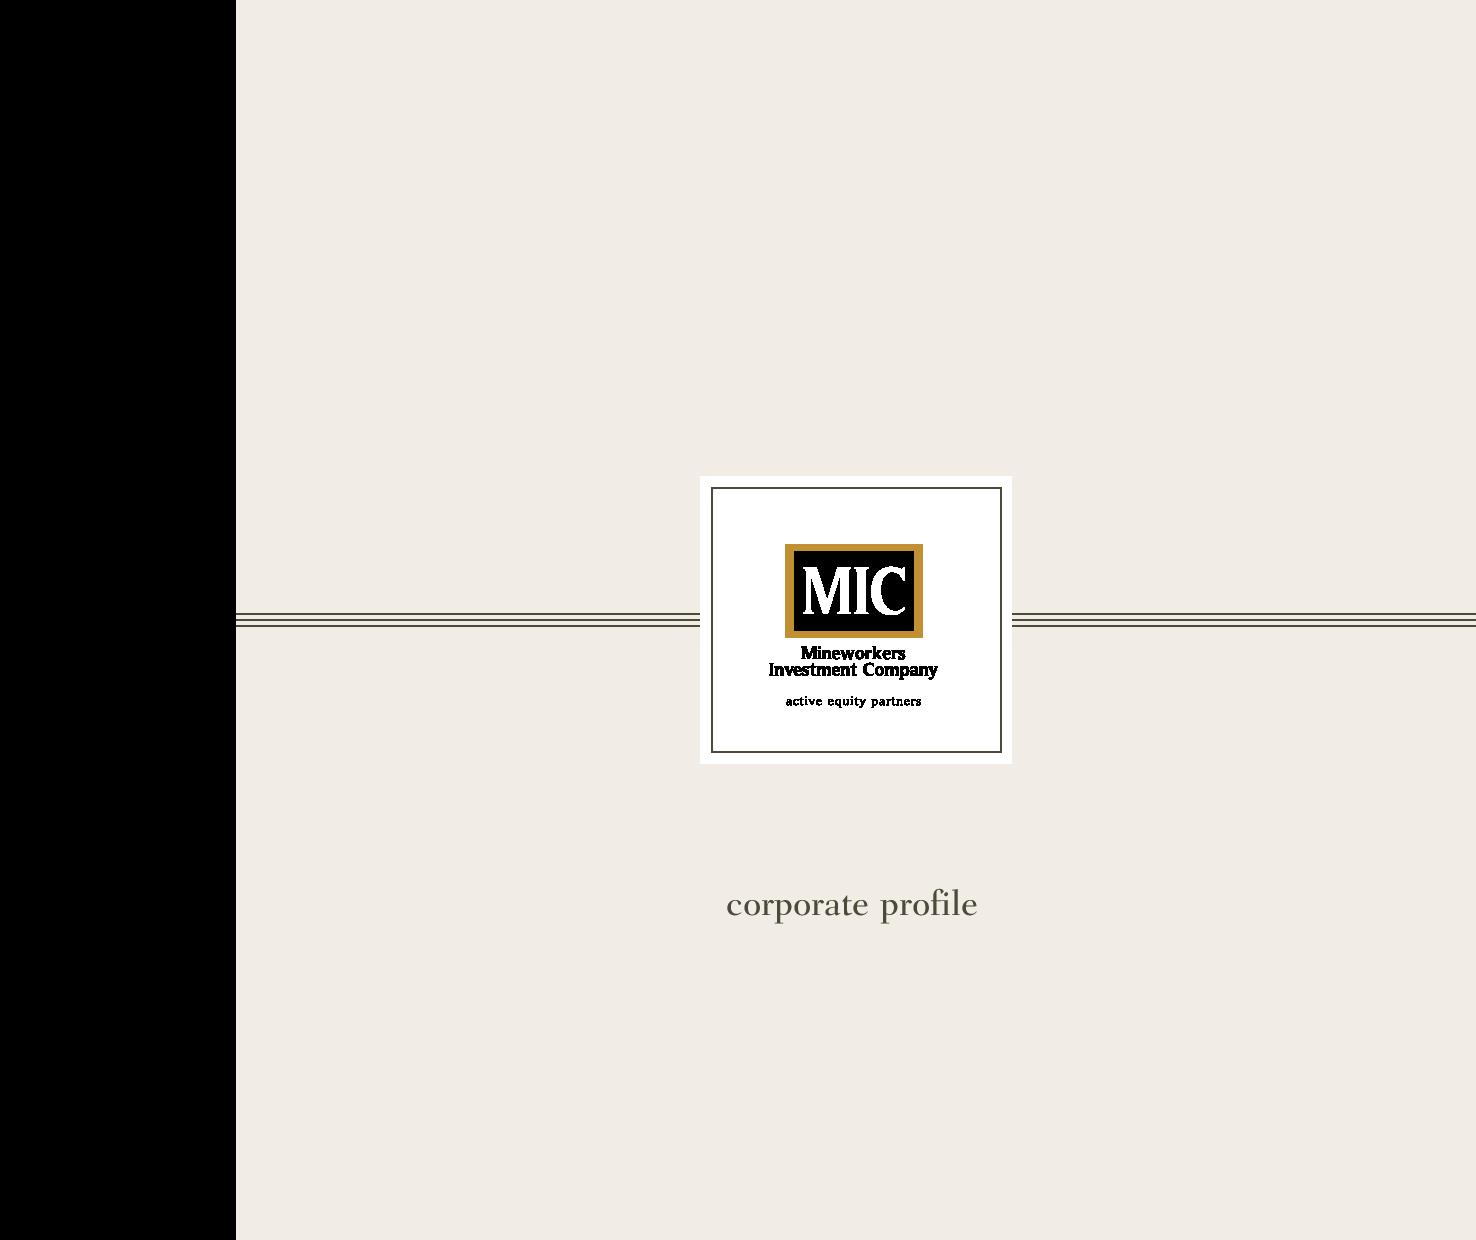 Mineworkers Investment Company (MIC) Corporate Profile